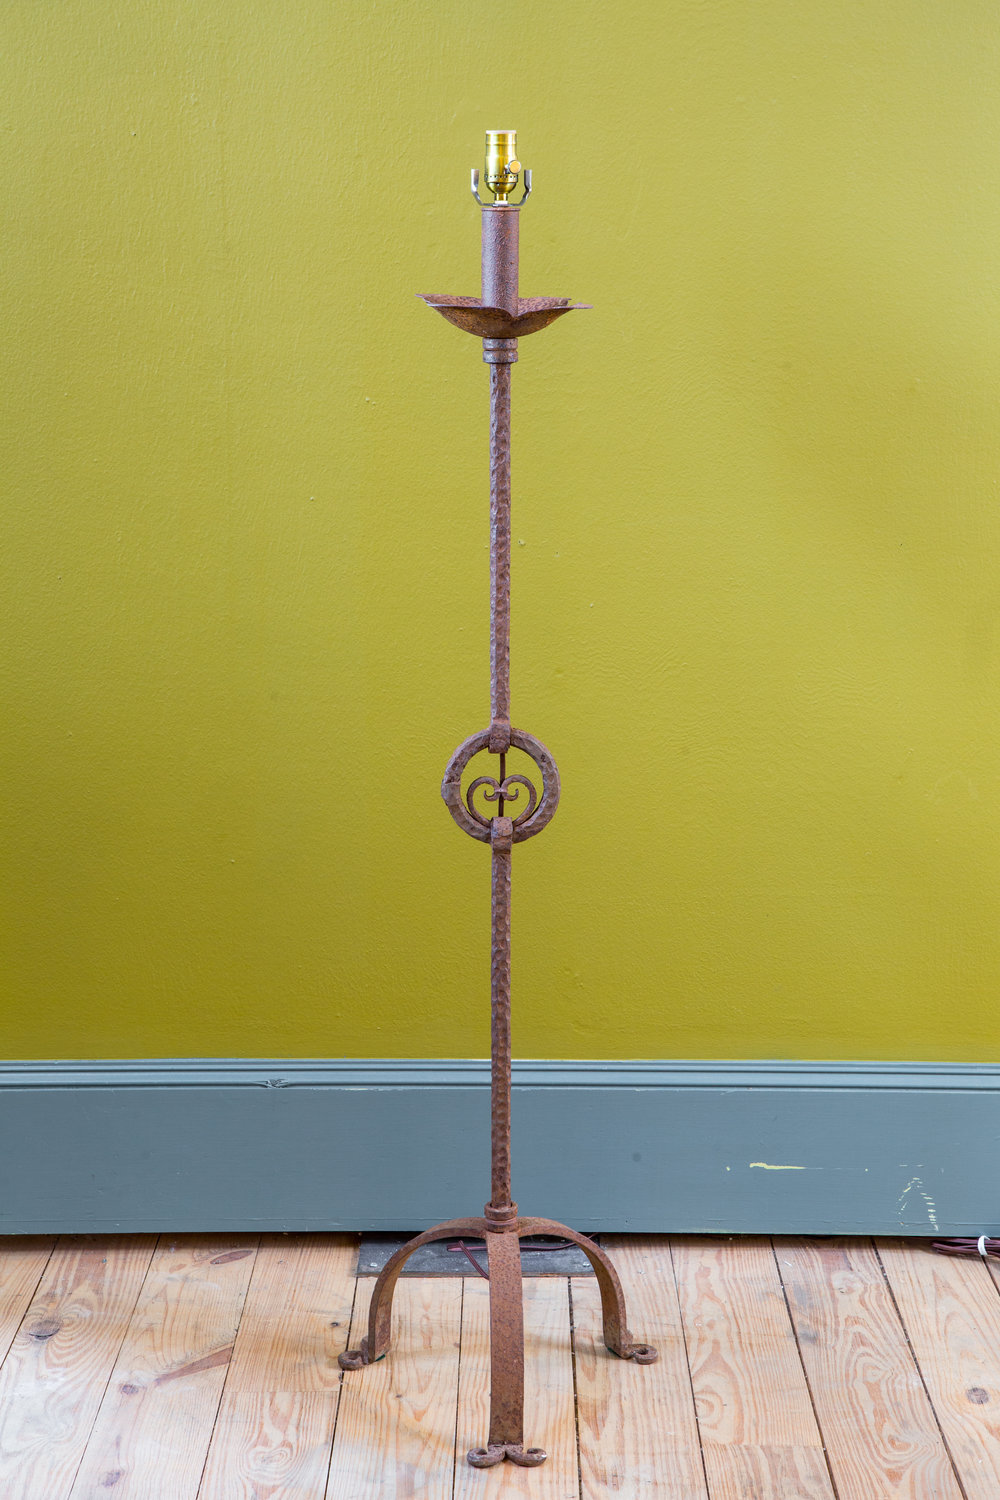 One of a Kind Iron Floor Lamp